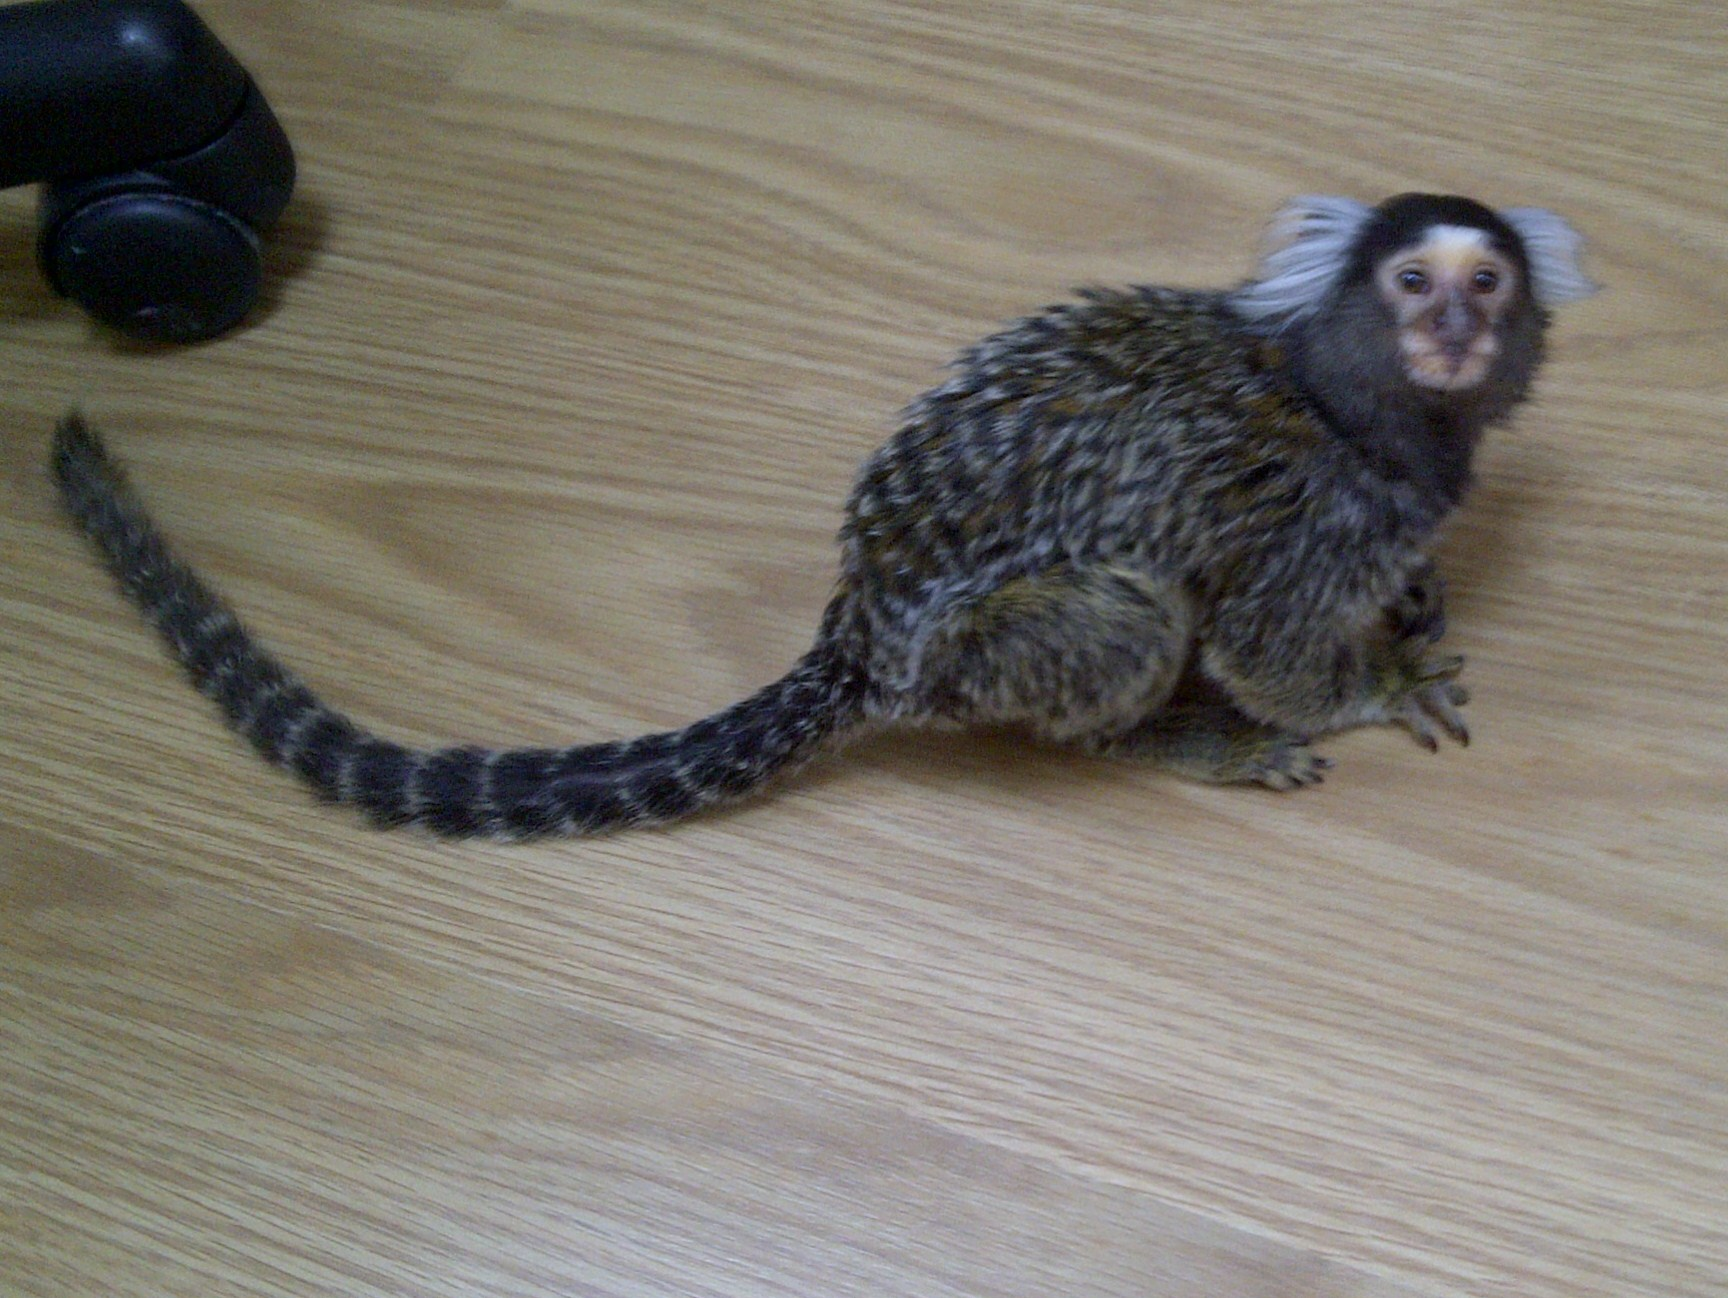 SE England Marmoset Monkey For Sale In London - Reptile Forums